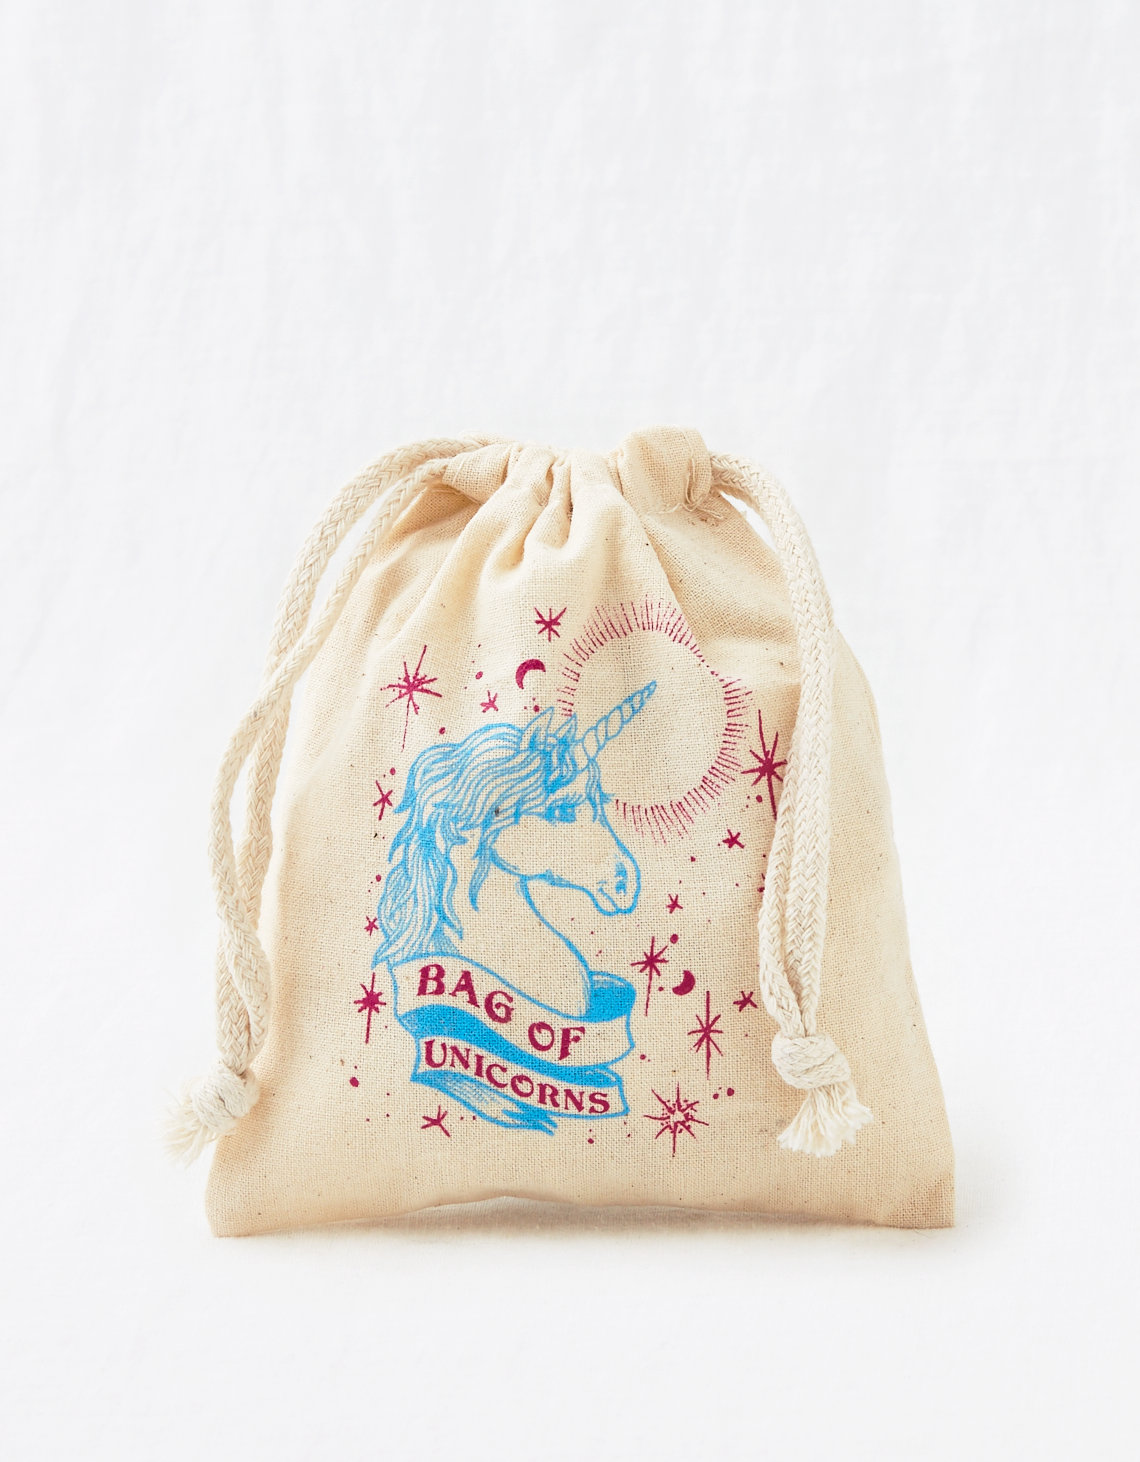 Spitfire Girl Bag of Unicorns | Tuggl